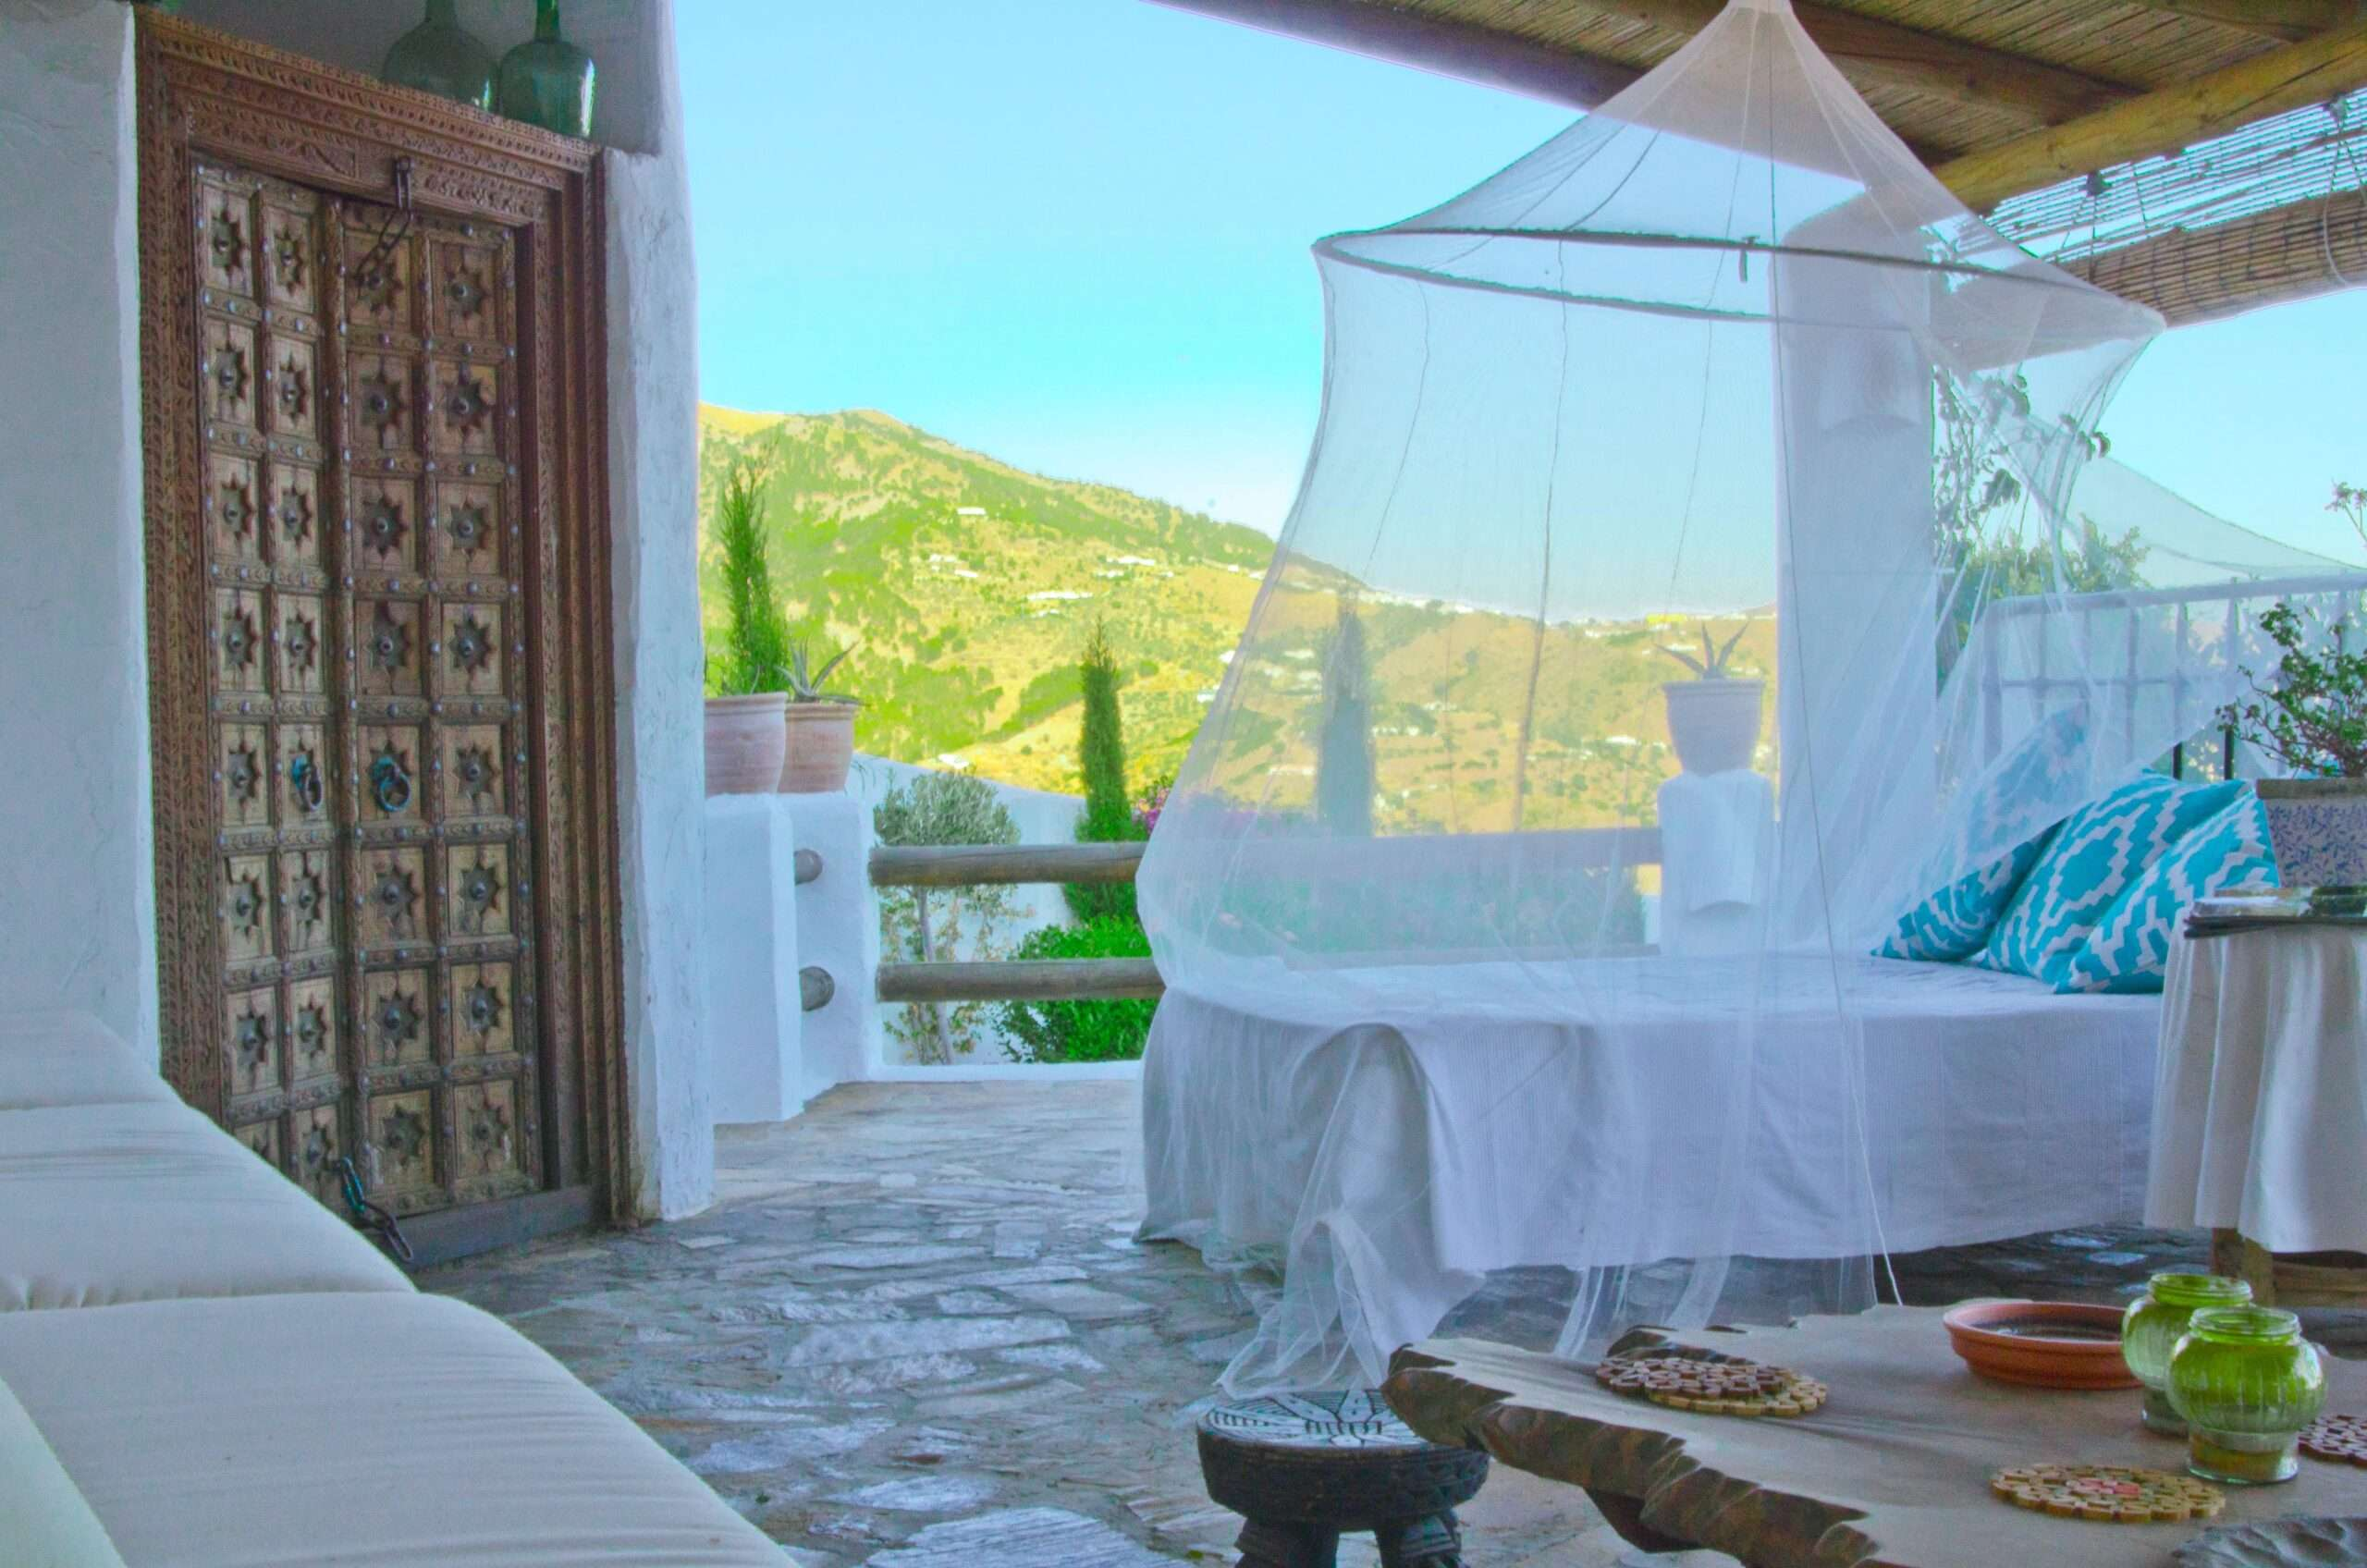 Rooftop open air bedroom at Villa El Carligto in Spain